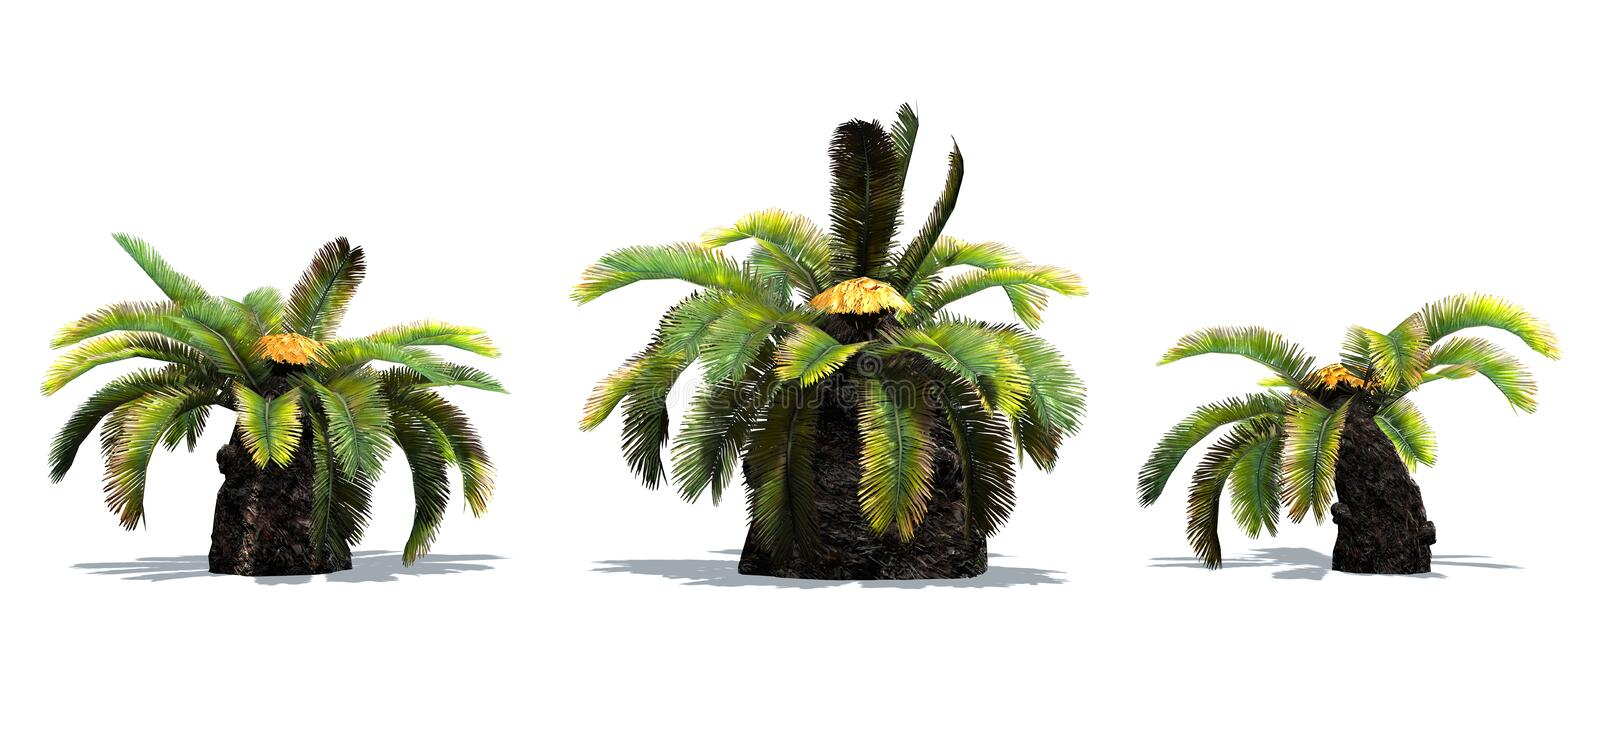 Set of Sago Palm trees with shadow on the floor. Isolated on white background royalty free illustration